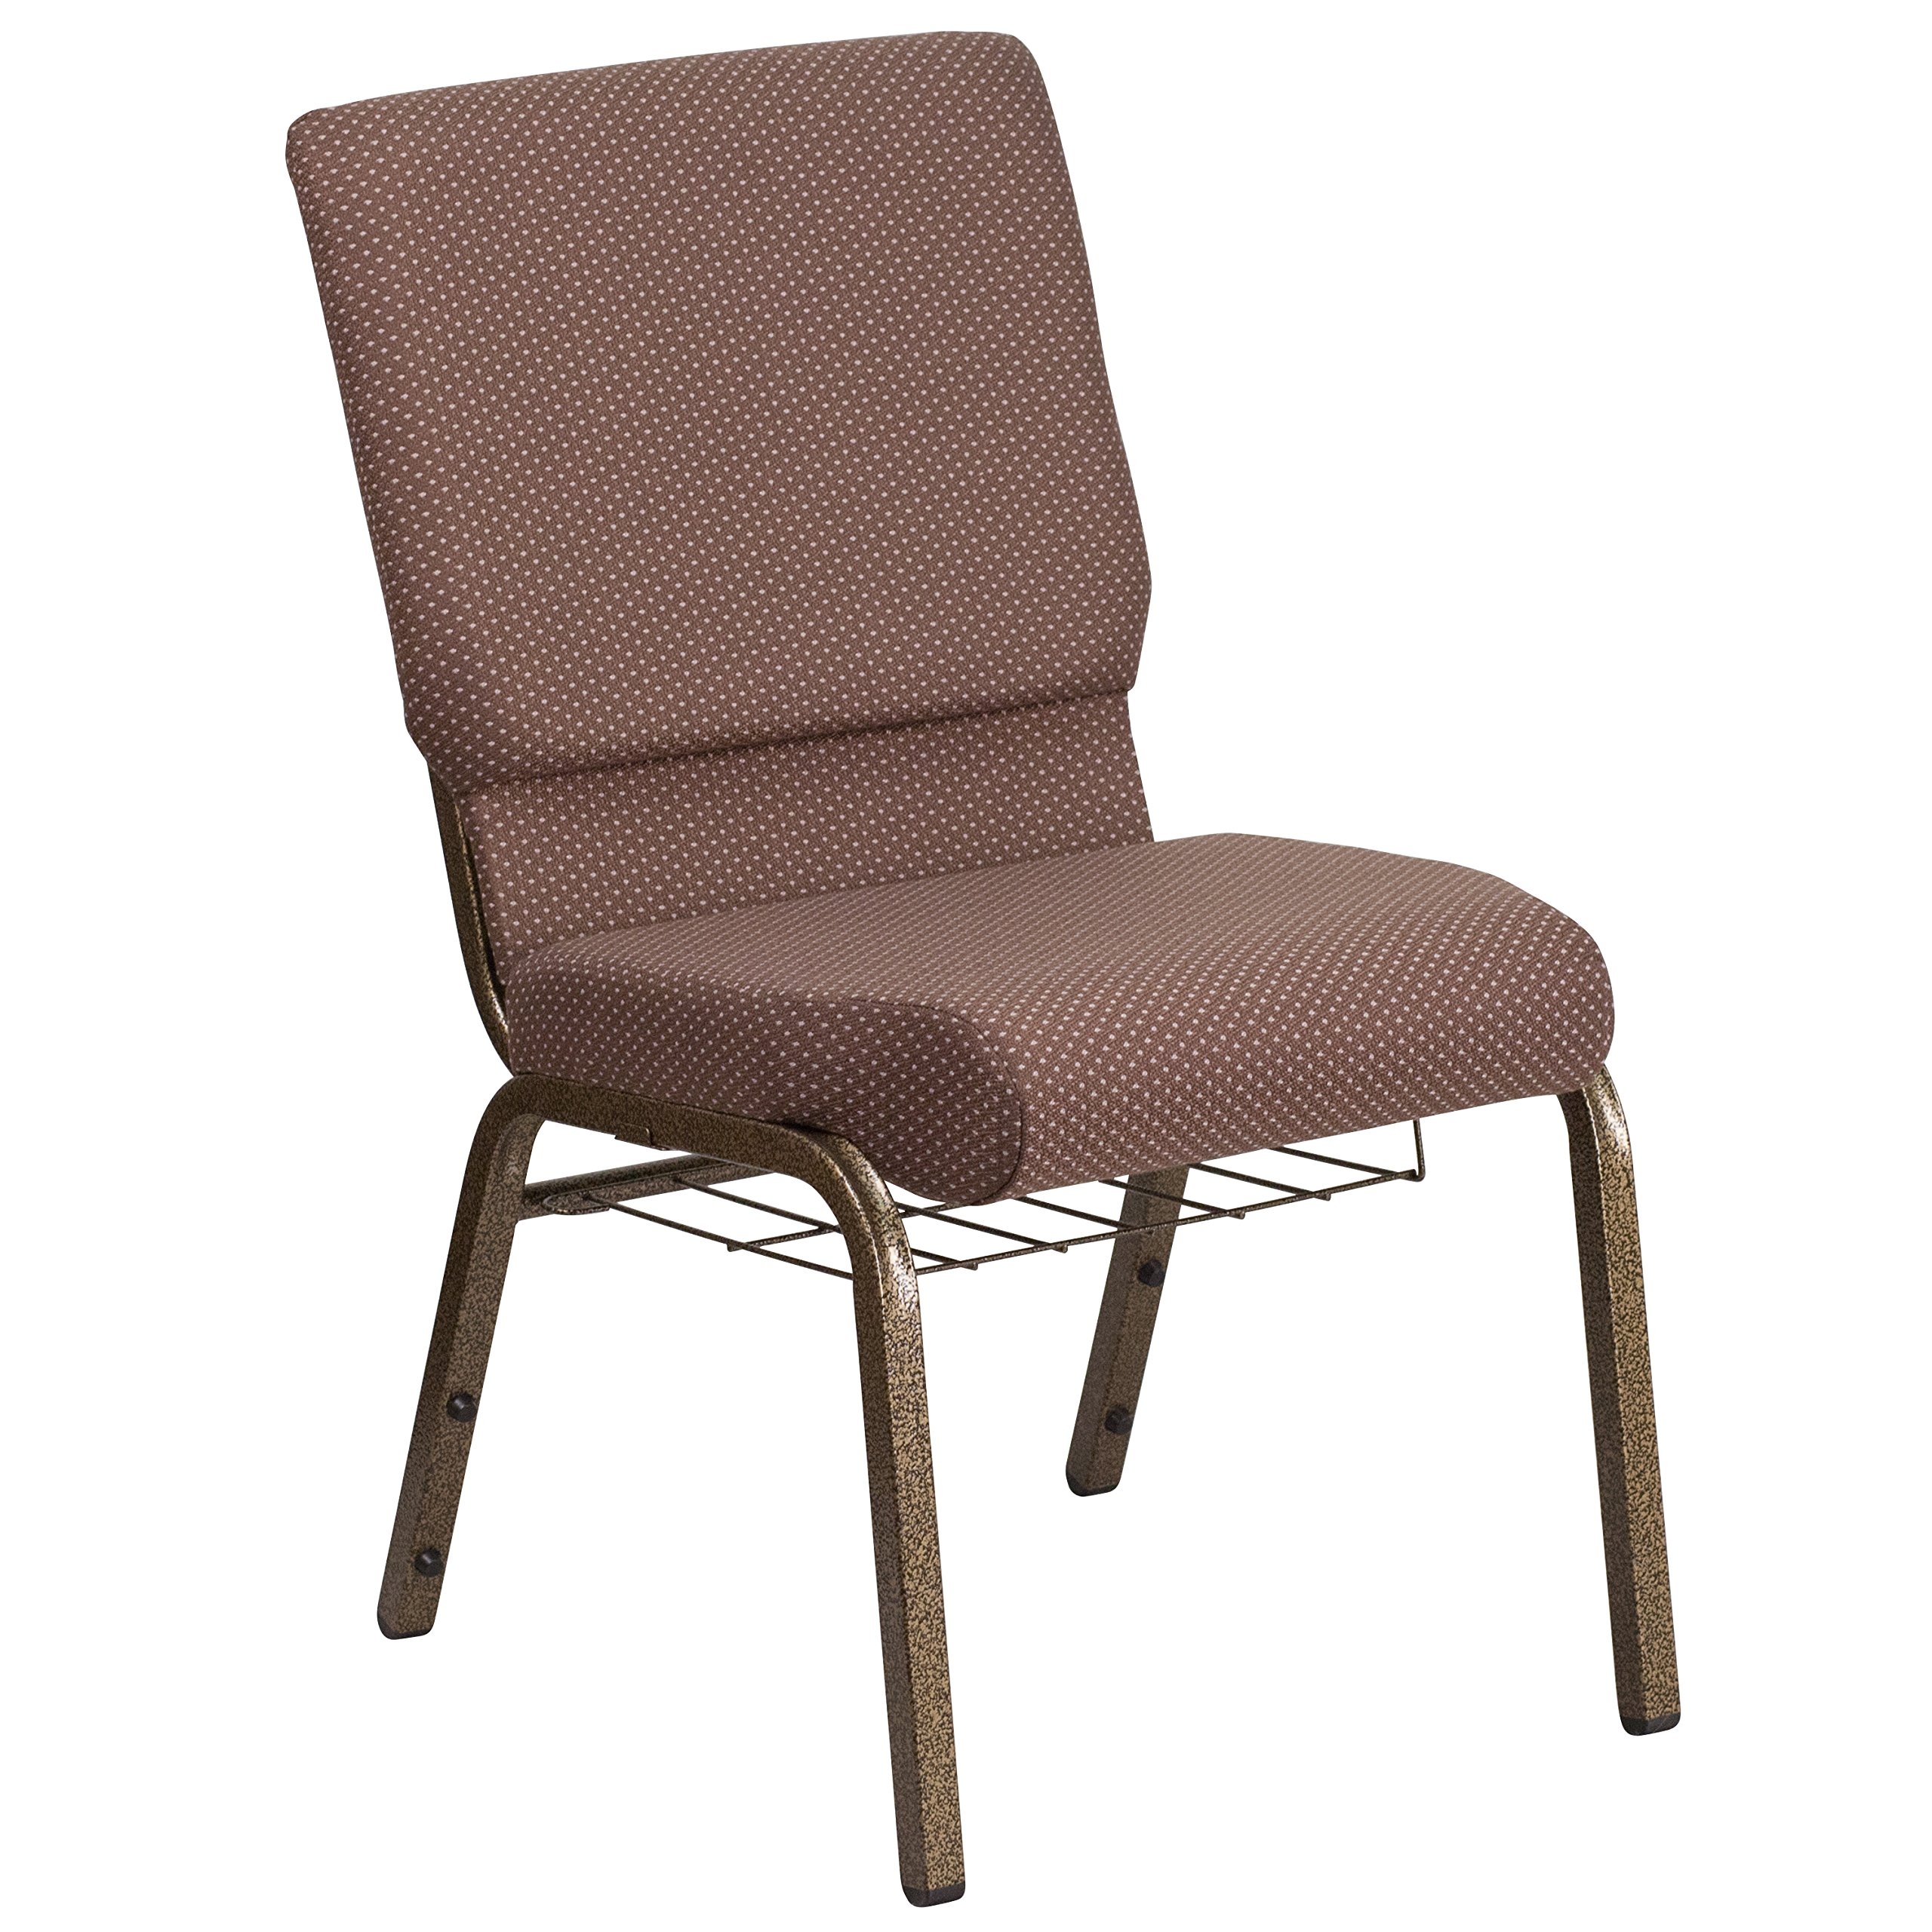 MFO Industrial Strength 18.5''W Brown Dot Fabric Church Chair with 4.25'' Thick Seat, Book Rack - Gold Vein Frame